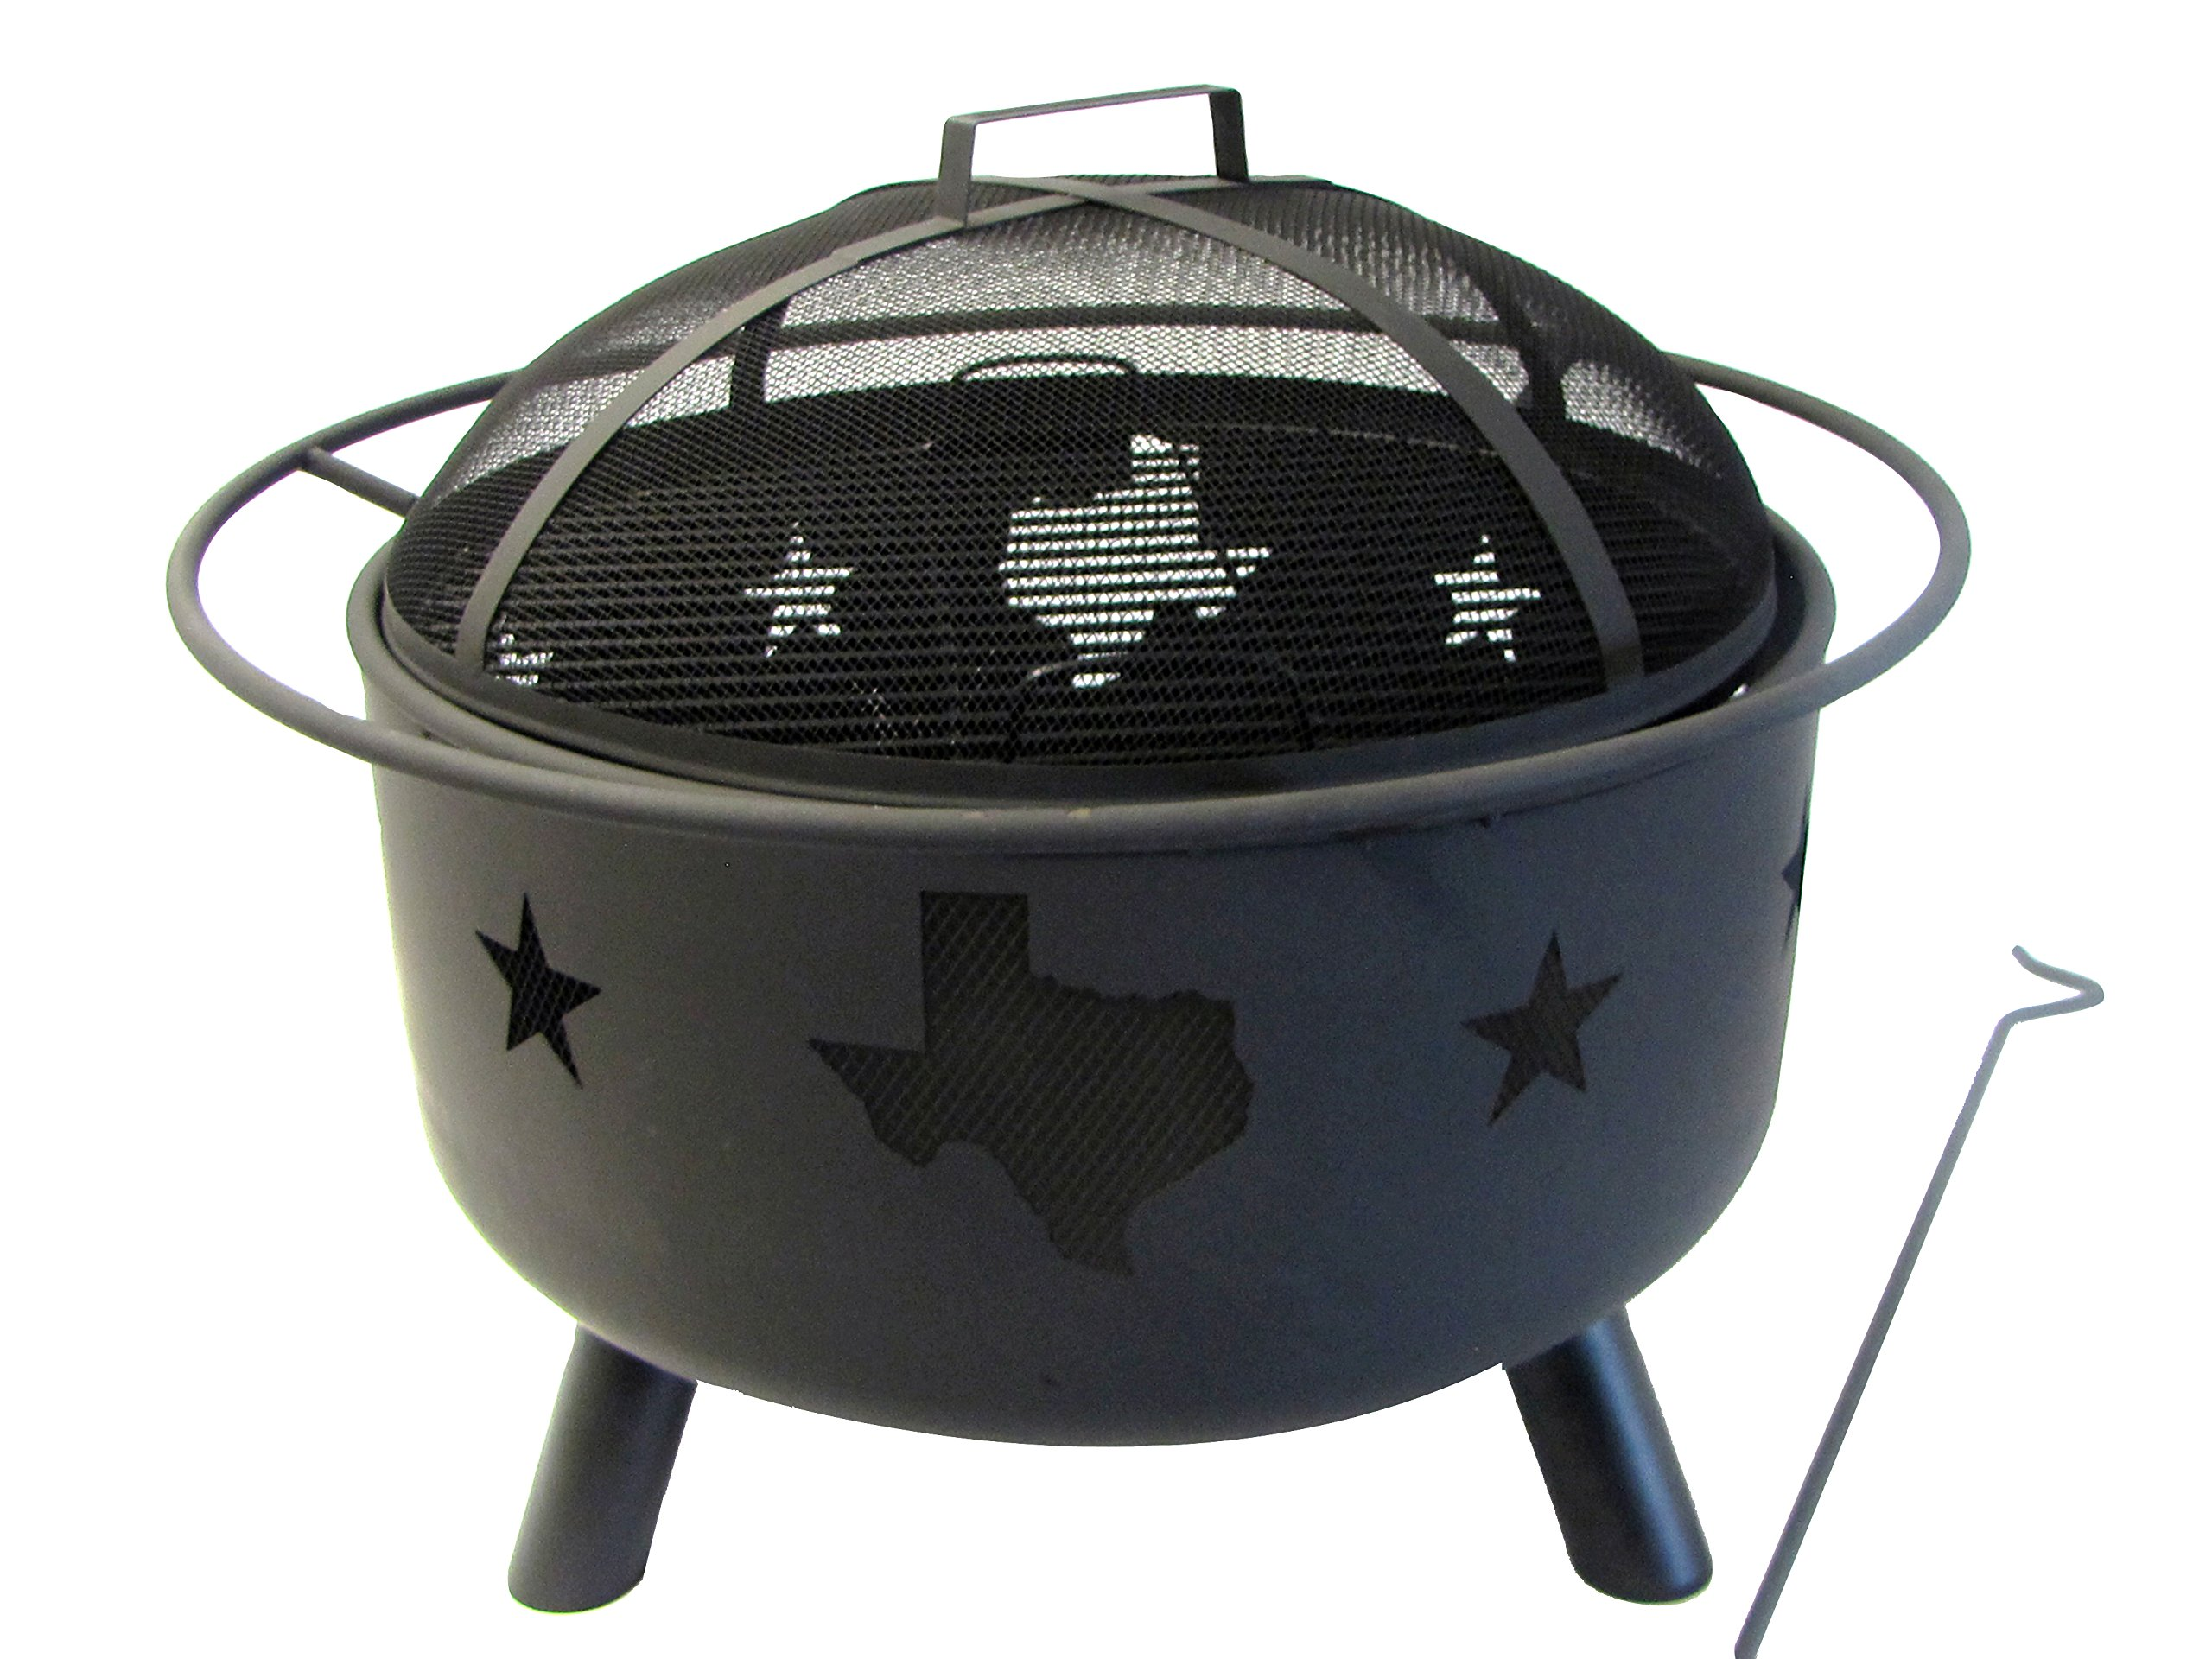 Leigh Country TX 93538 Texas Map Fire Pit - Texas and star design cutouts Sturdy Steel construction with Black finish Safety ring for easy transport - patio, fire-pits-outdoor-fireplaces, outdoor-decor - 81aCtPeCfIL -